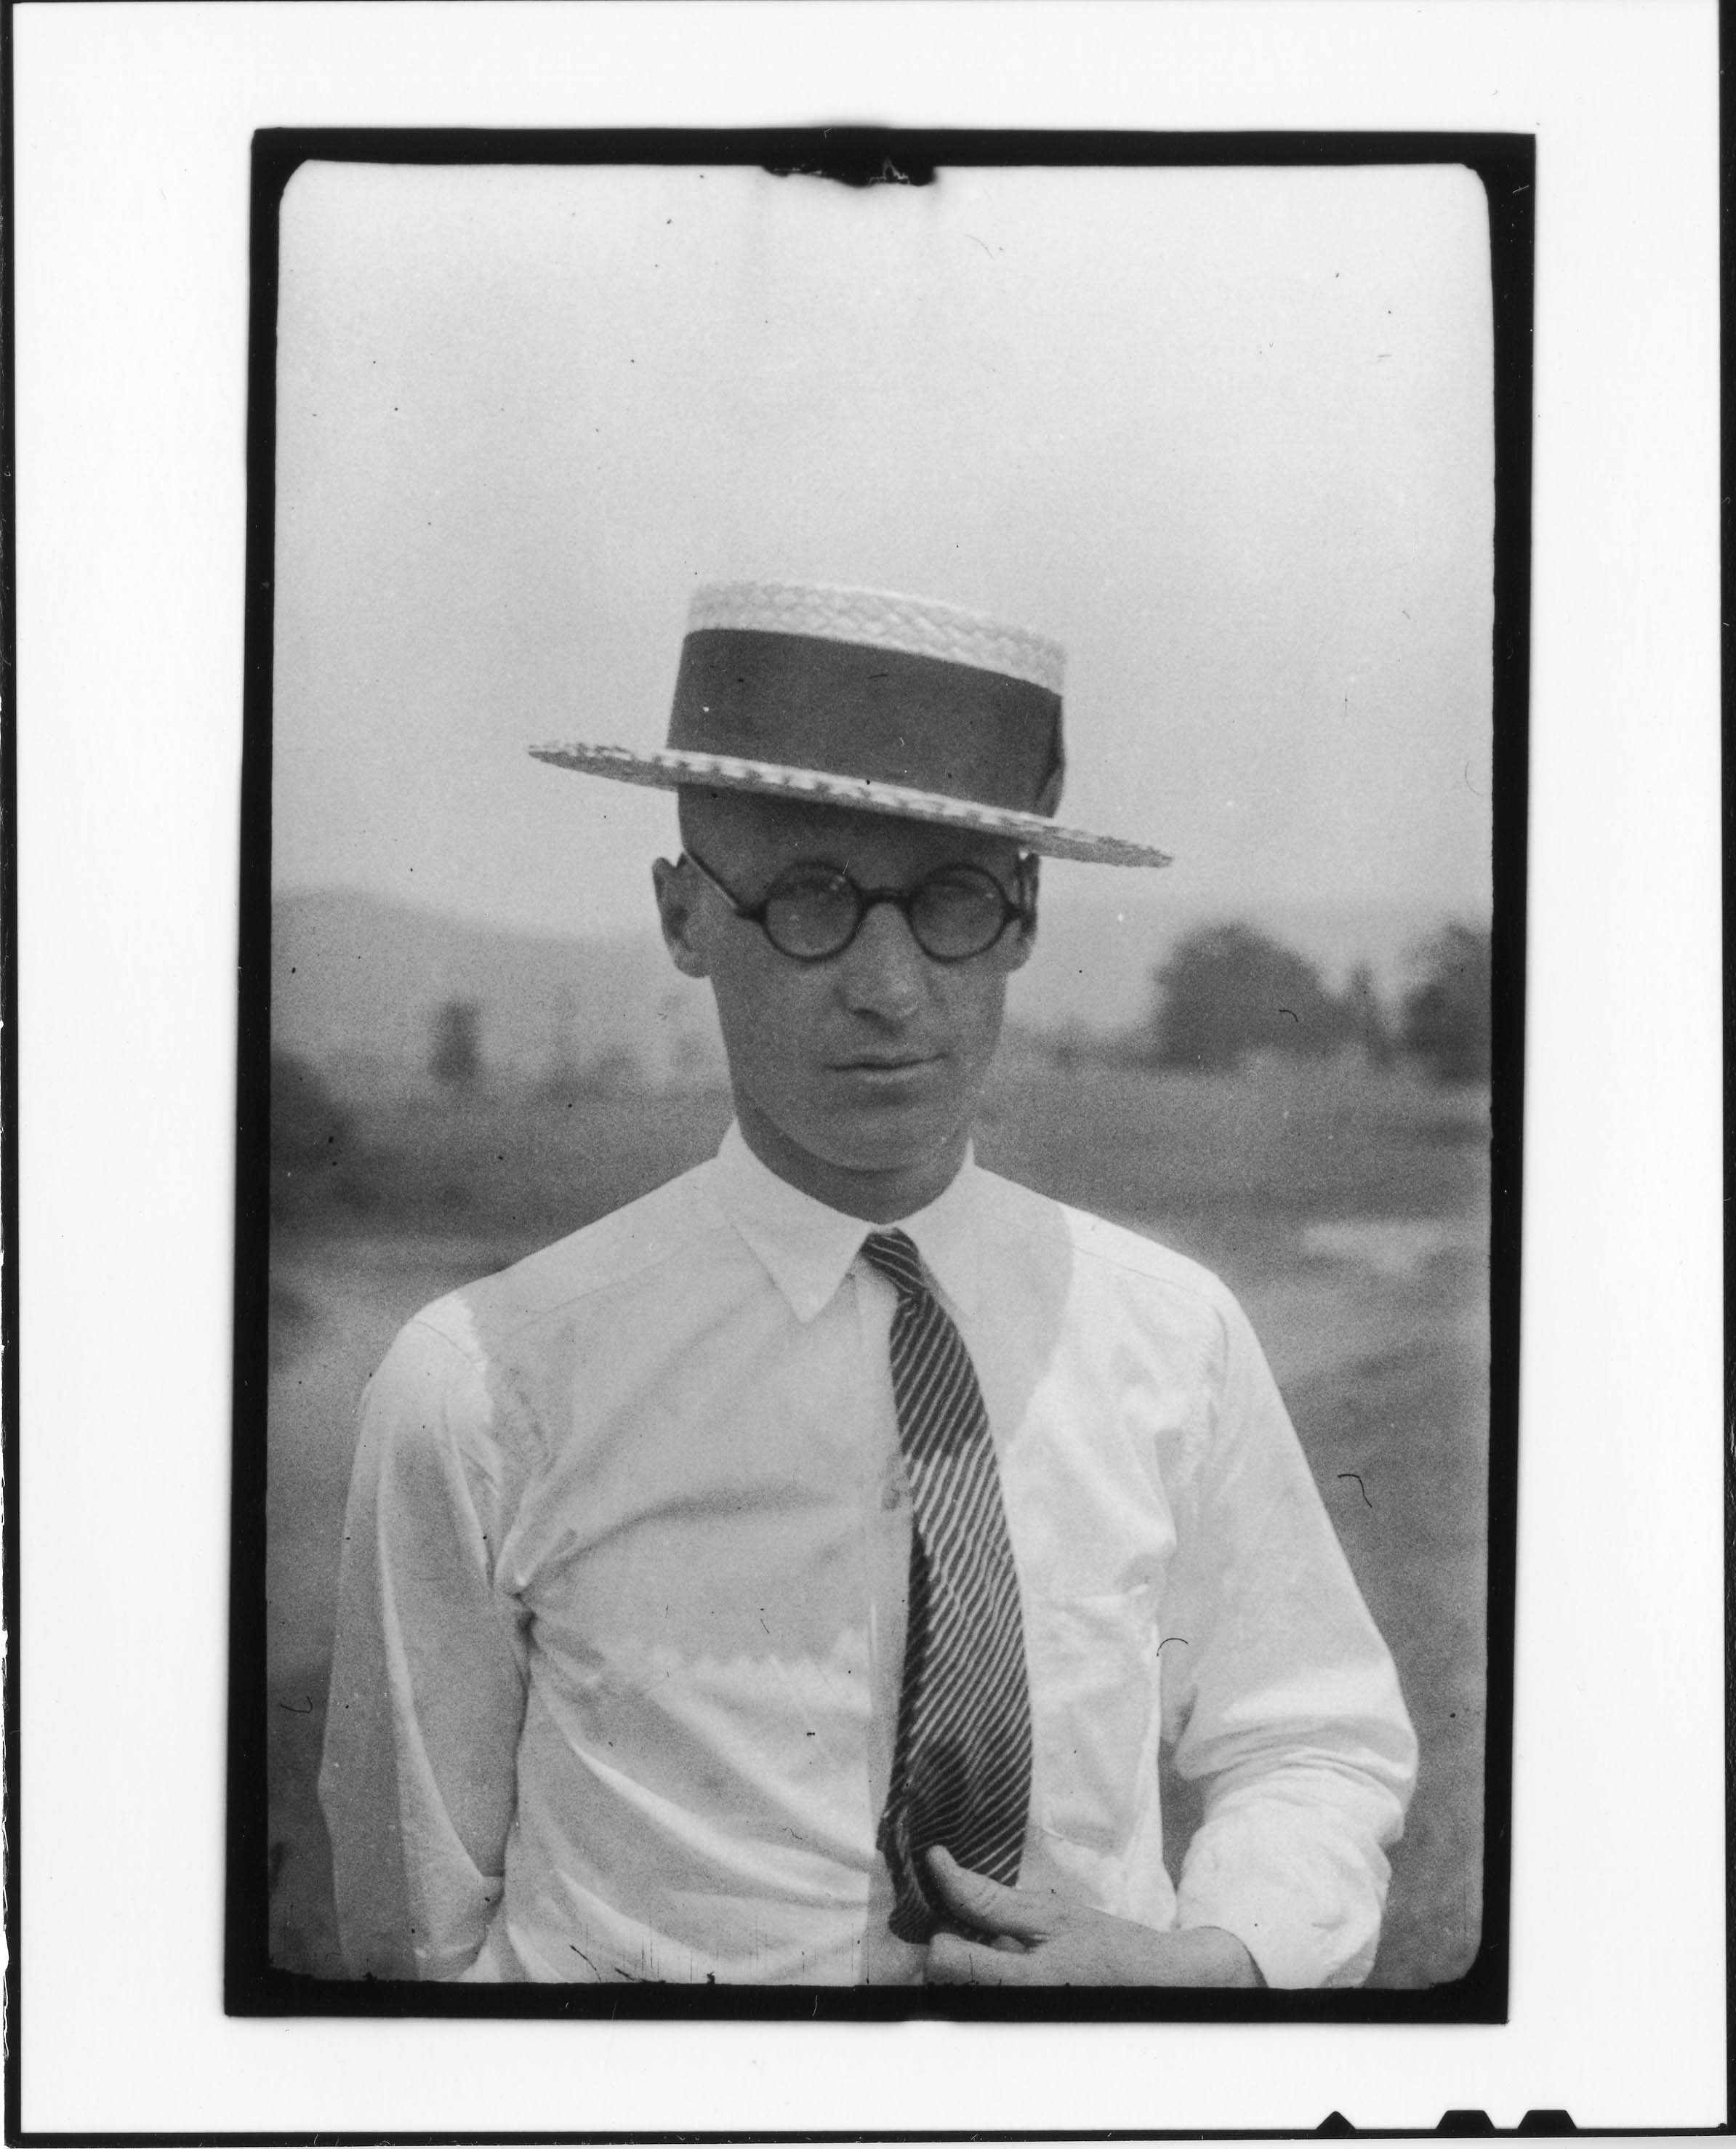 th anniversary of the scopes trial john t scopes trial john thomas scopes 1925